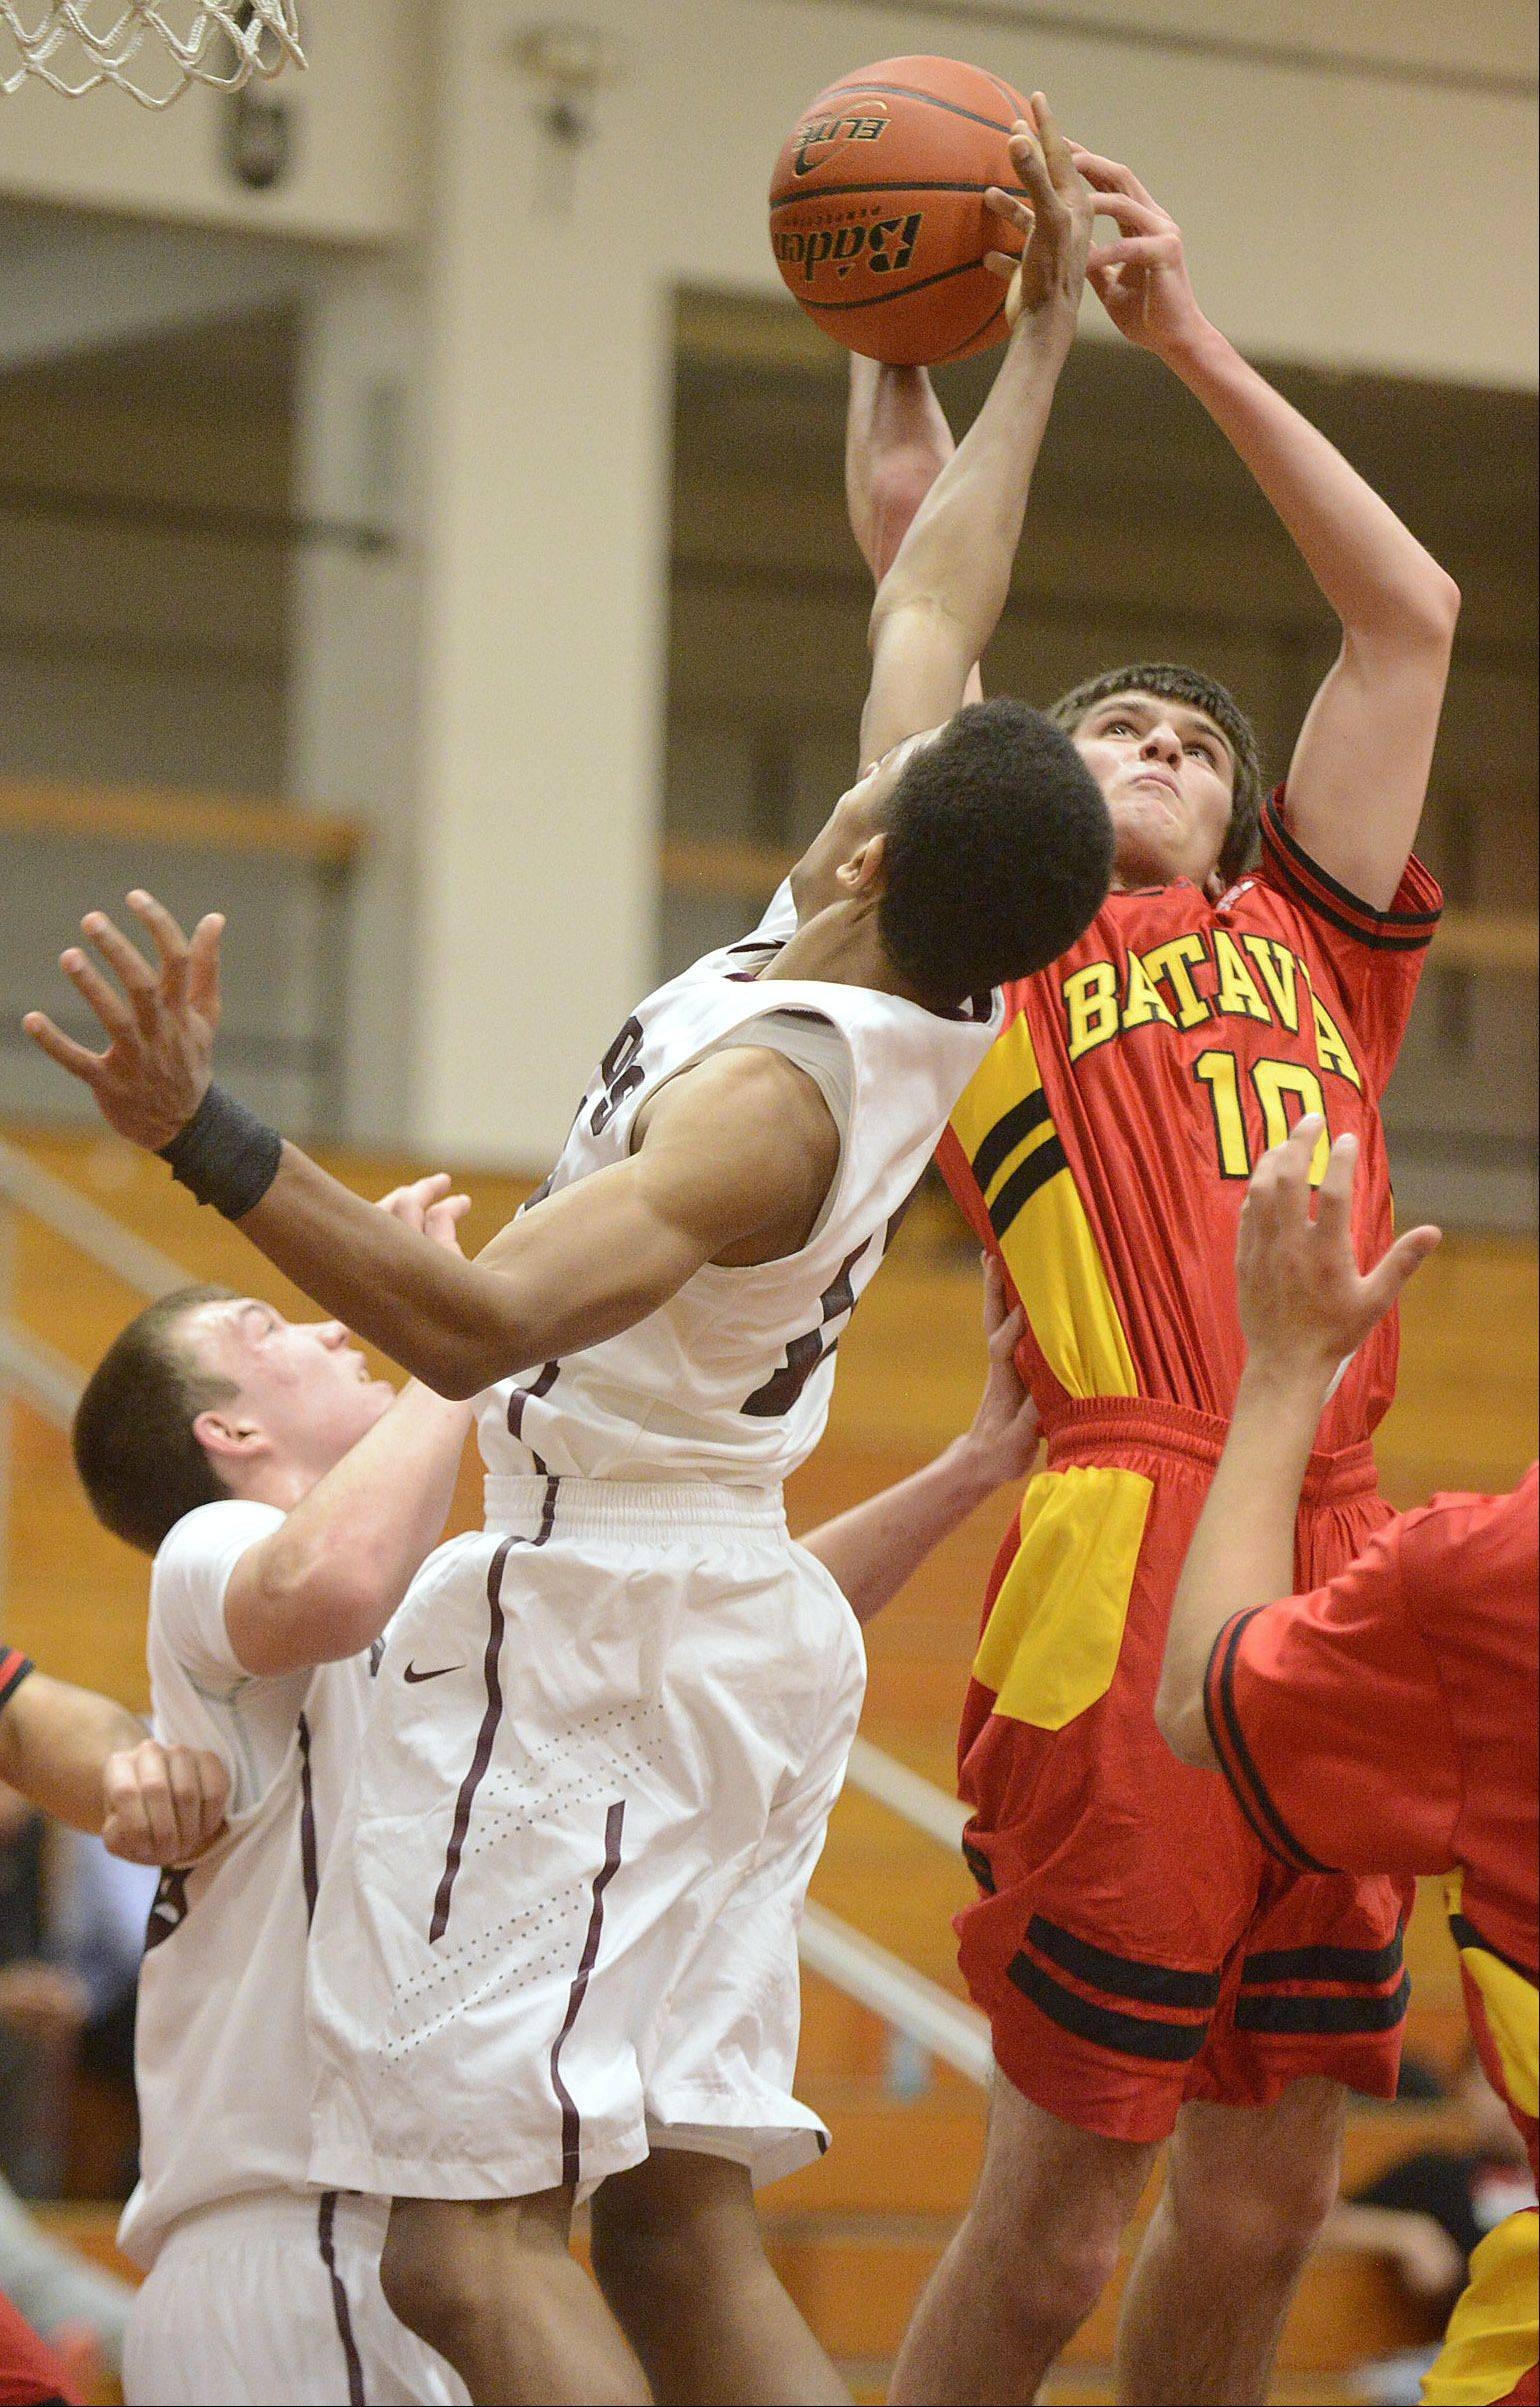 Batavia's Danny Pieczynski denies Elgin's Donte Harper a basket in the second quarter on Saturday, January 18.